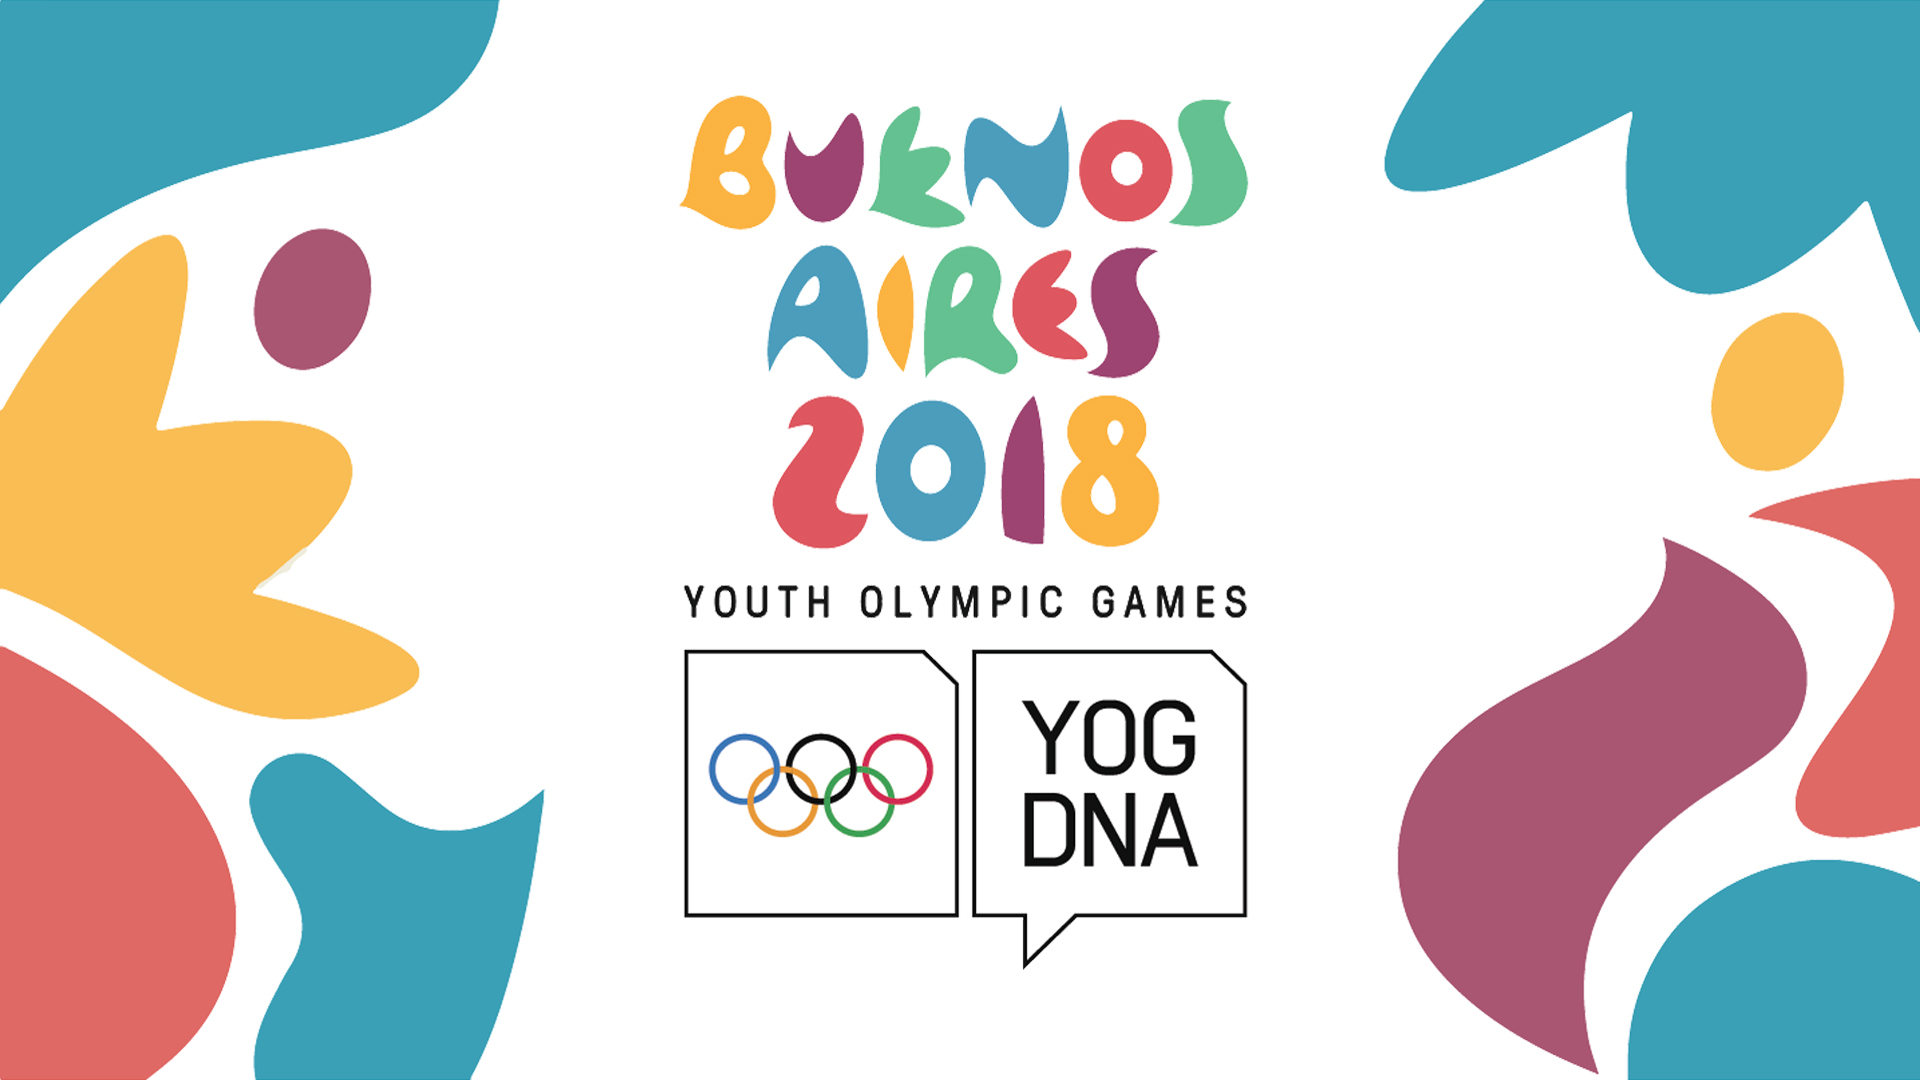 Women To Represent Australia in 3×3 at Youth Olympic Games